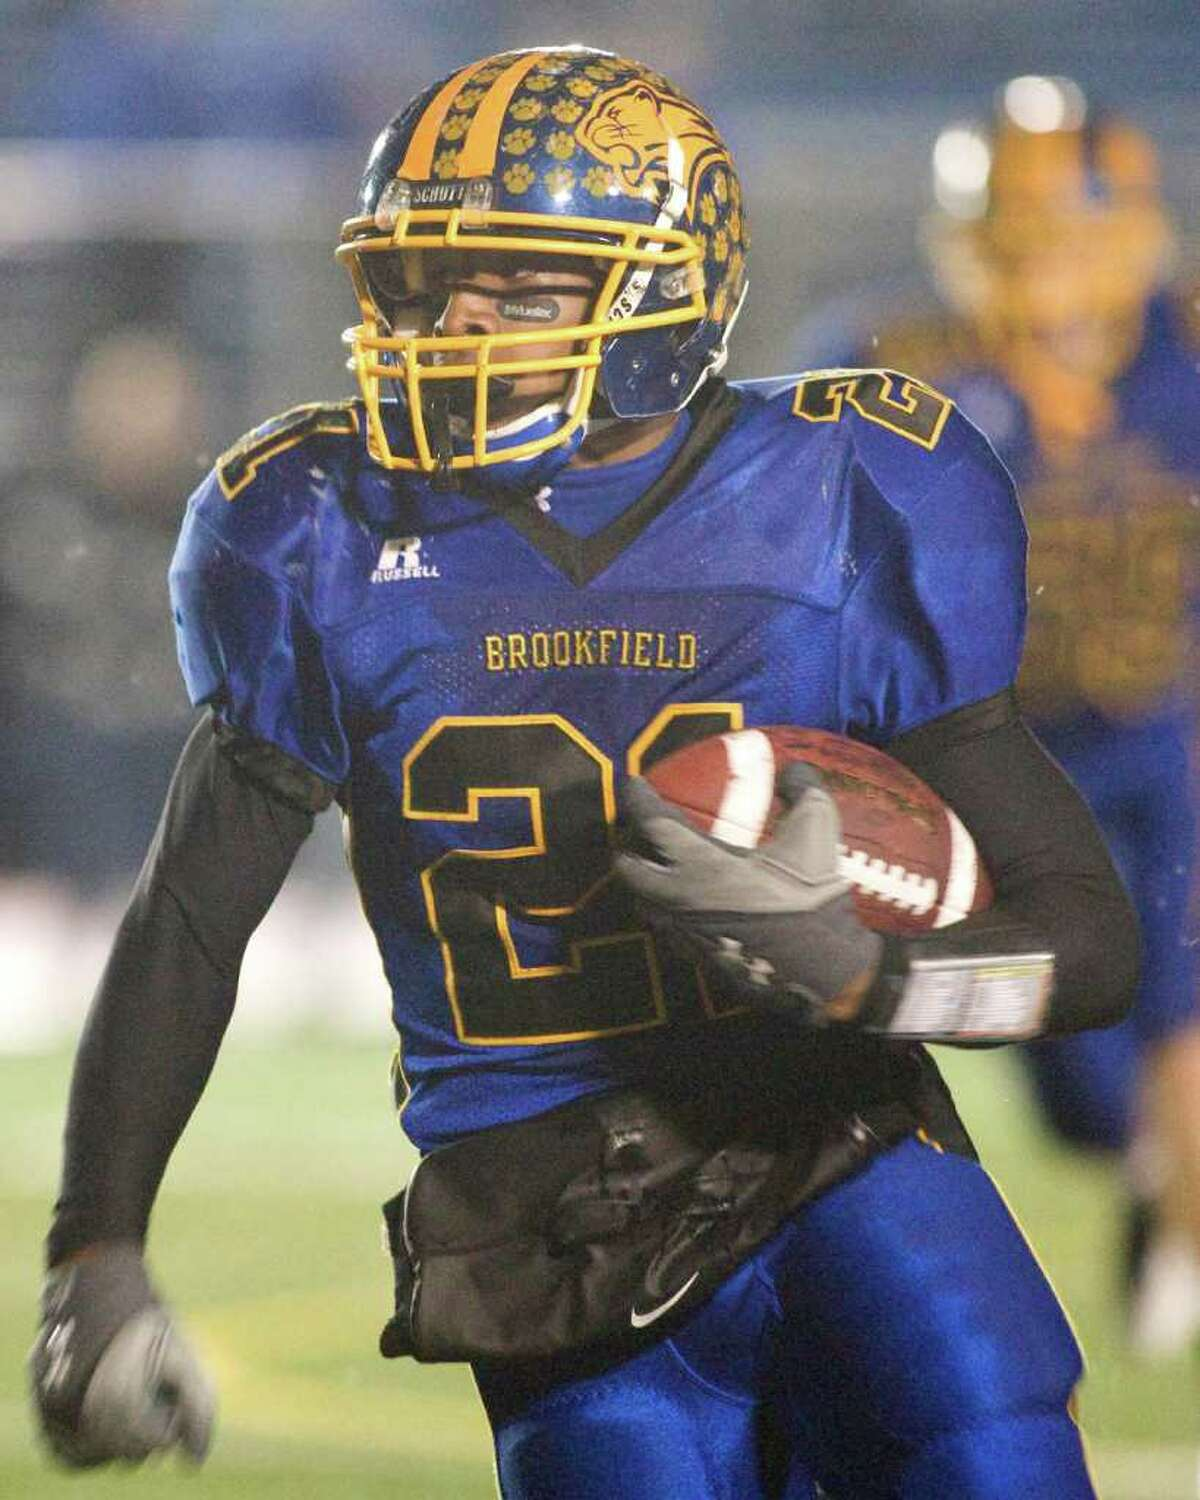 Brookfield's Leaon Gordon picks up a first down after catching a pass in the Bobcats' Class M state tournament quarterfinal game against Lyman Hall Tuesday night, Nov. 30, 2010, at Brookfield High School.